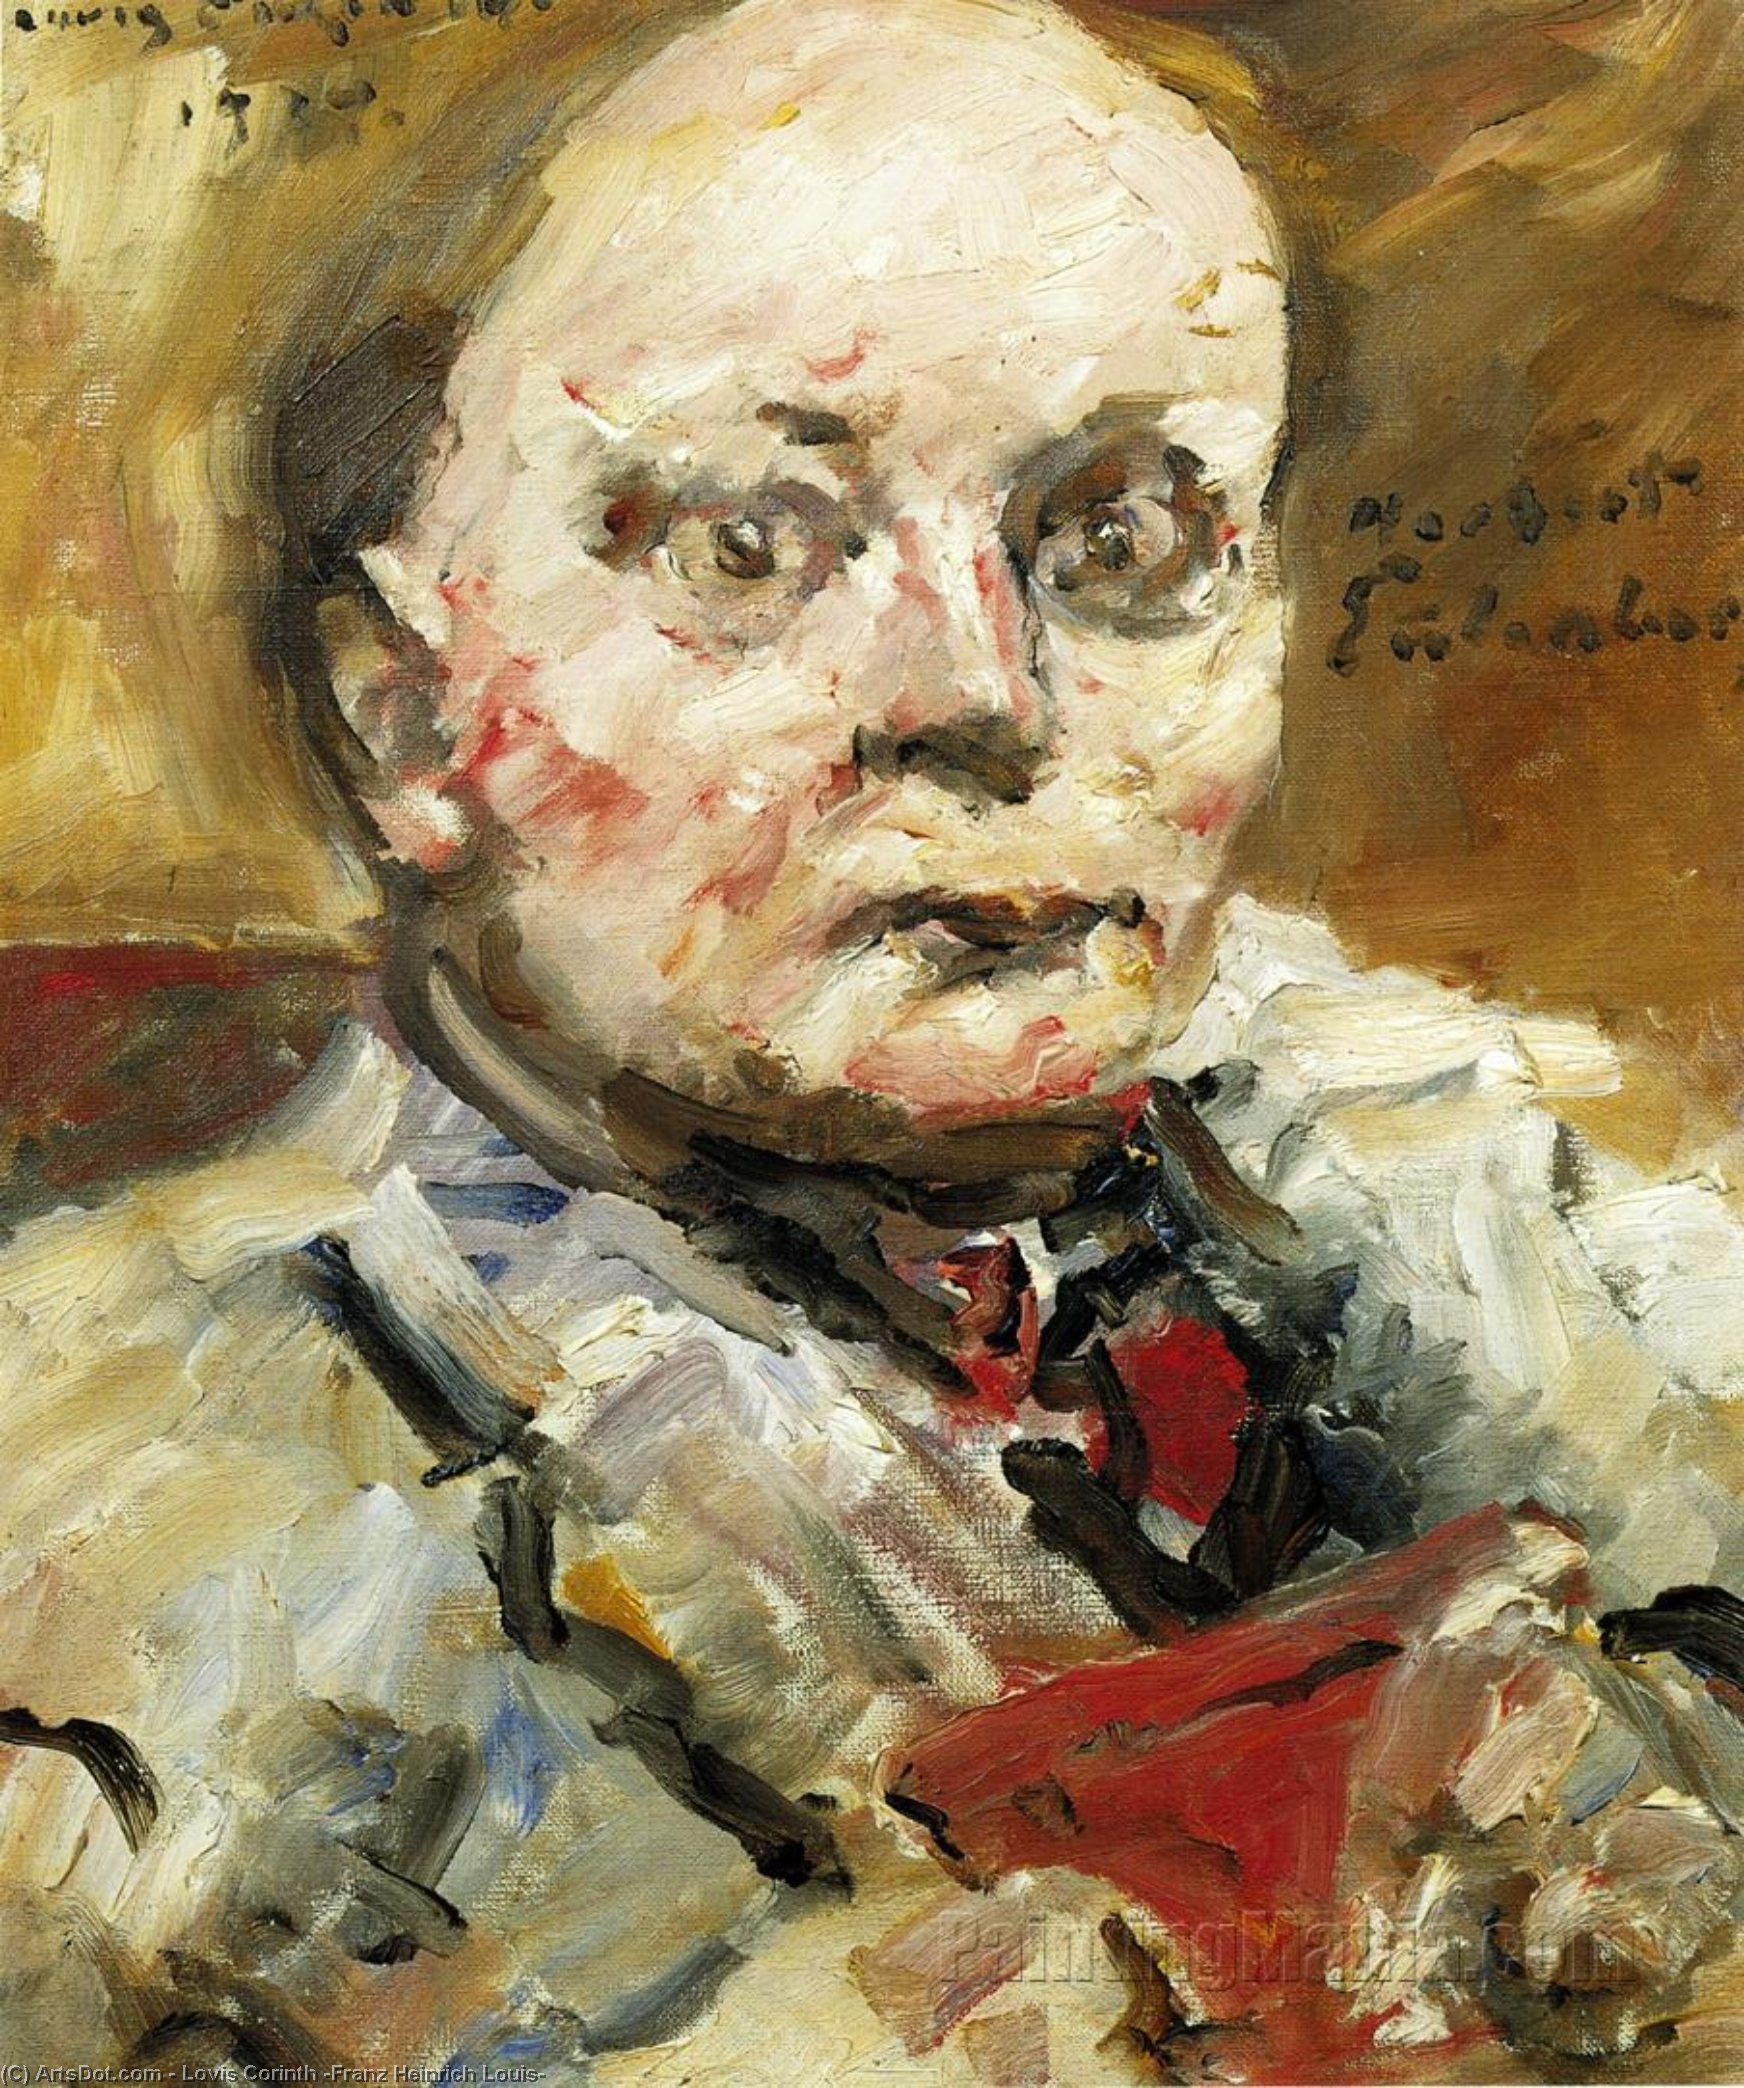 Portrait of the Poet Herbert Eulenberg, Oil On Canvas by Lovis Corinth (Franz Heinrich Louis) (1858-1925, Netherlands)